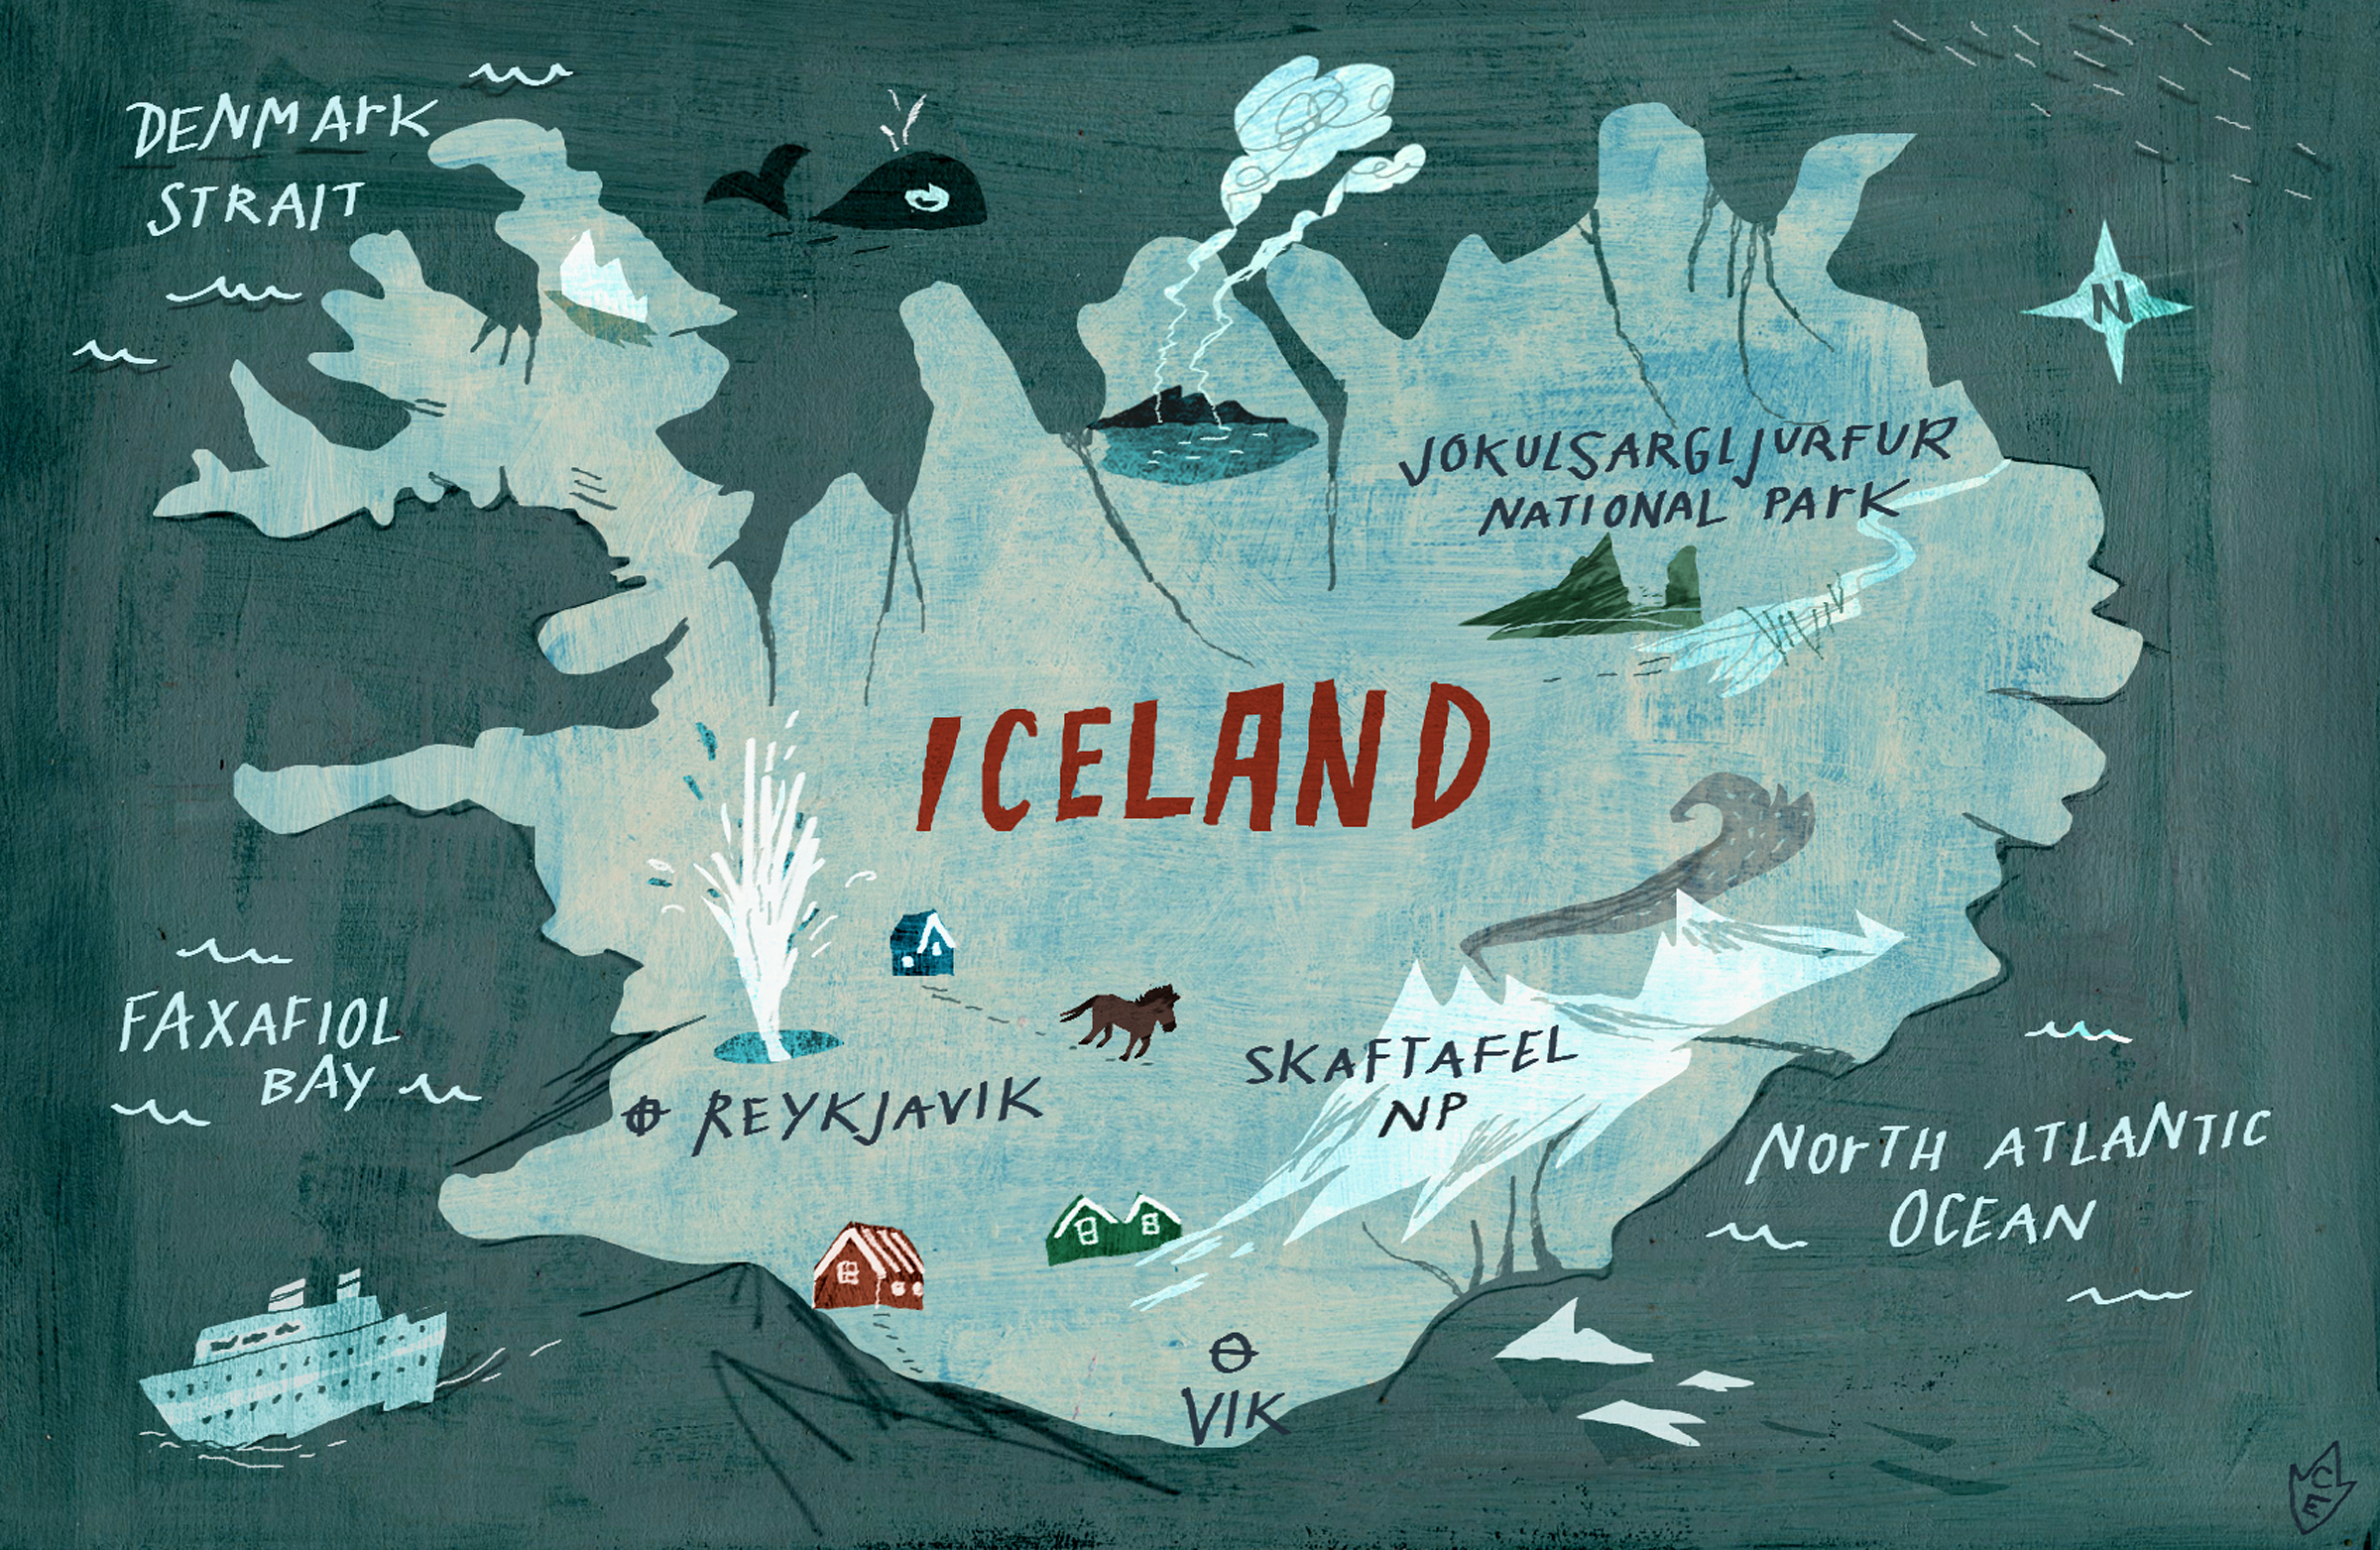 Iceland Map With Sights – Map Of Iceland Tourist Attractions